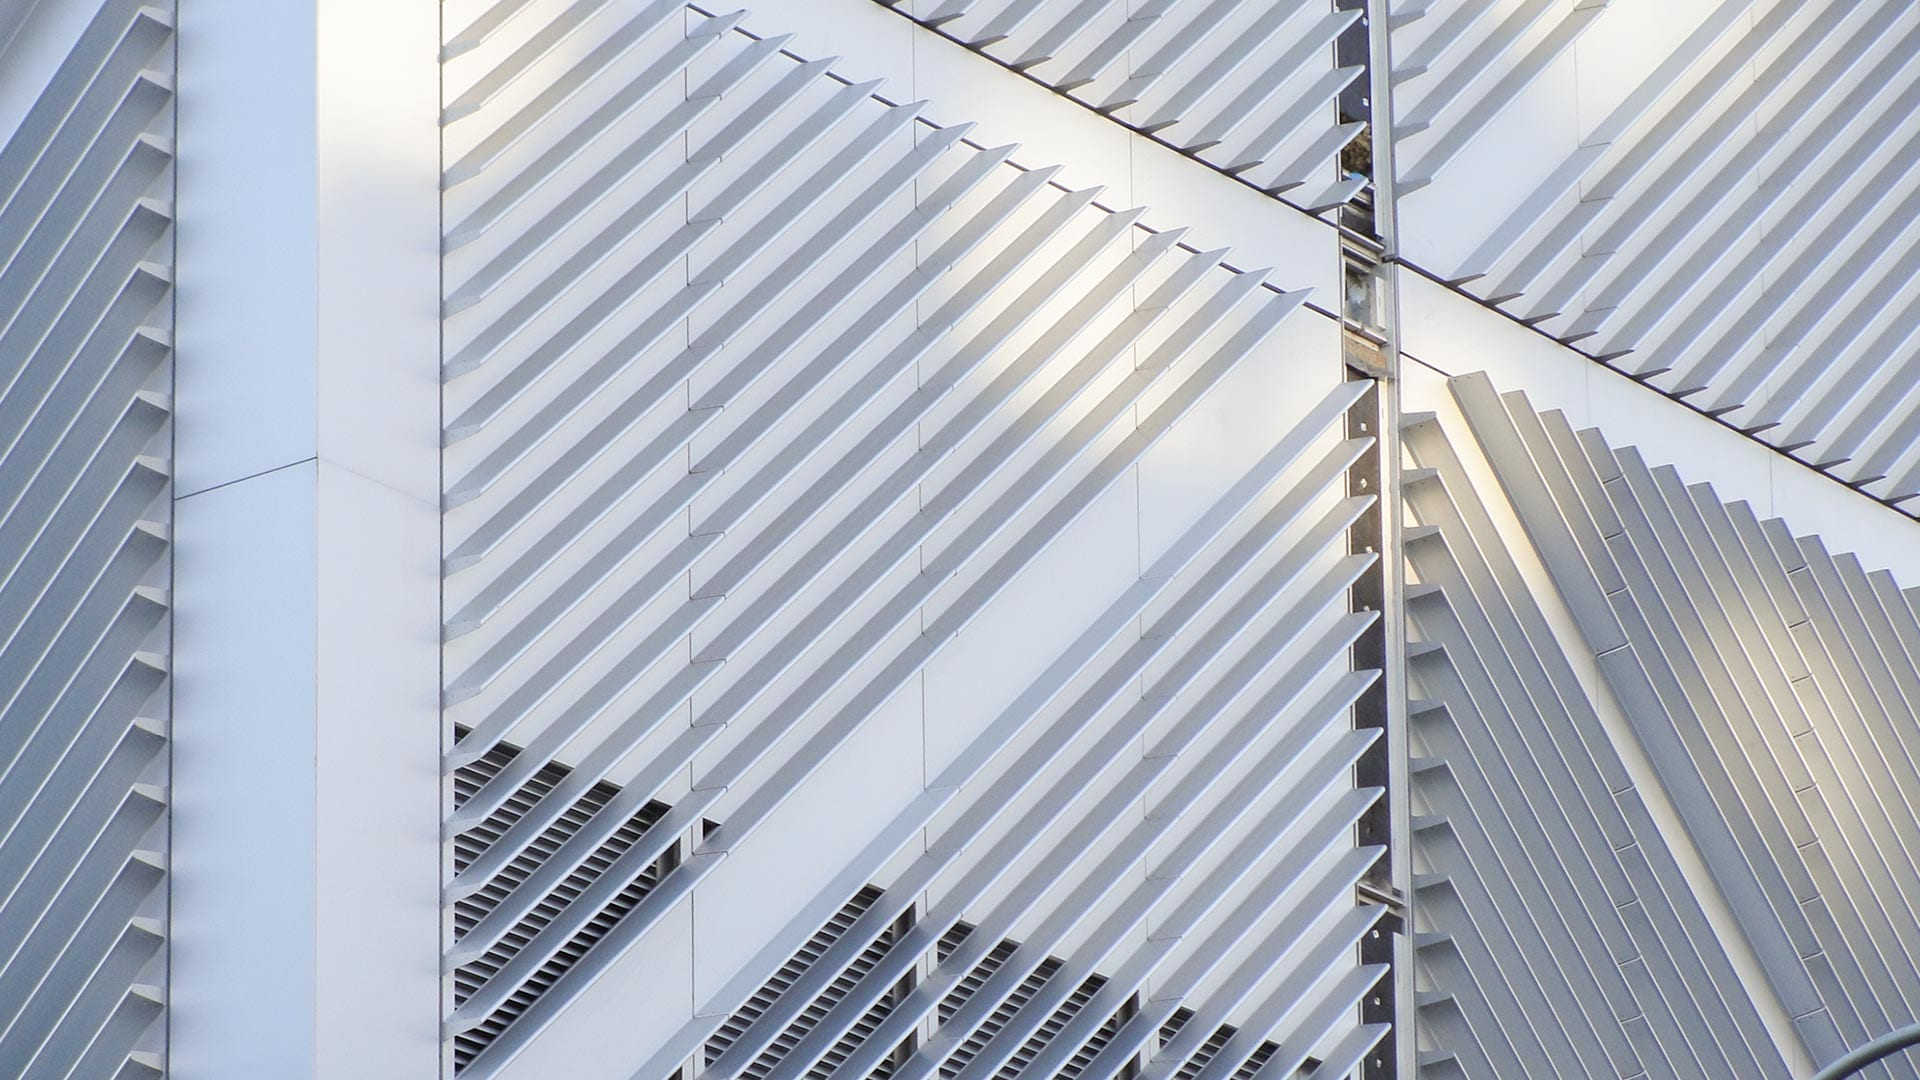 Detail of the aluminum extrusion system facade used on Columbia University.